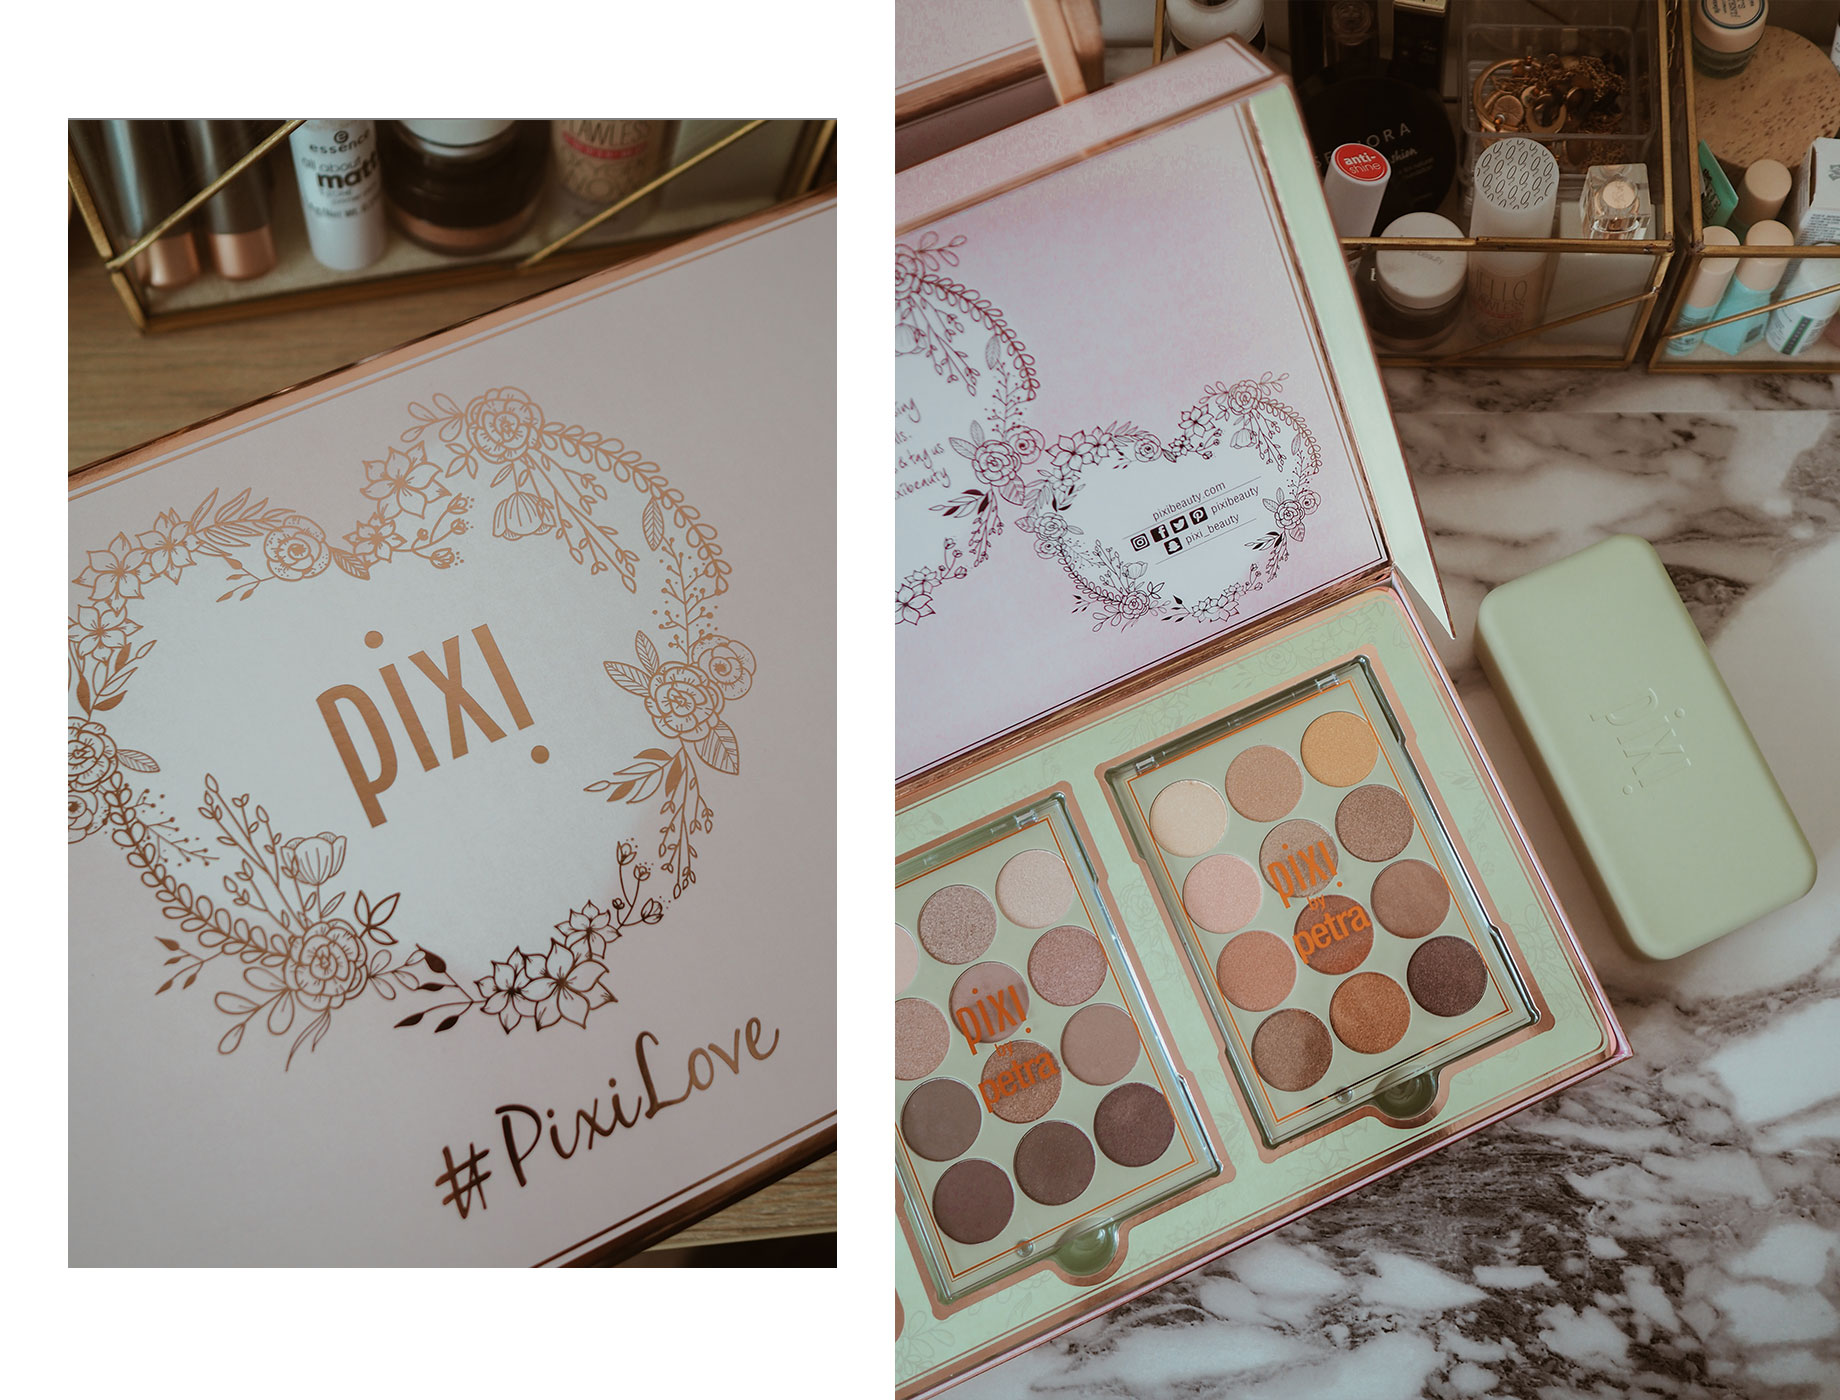 Pixi Beauty Eyeshadow Palette Review